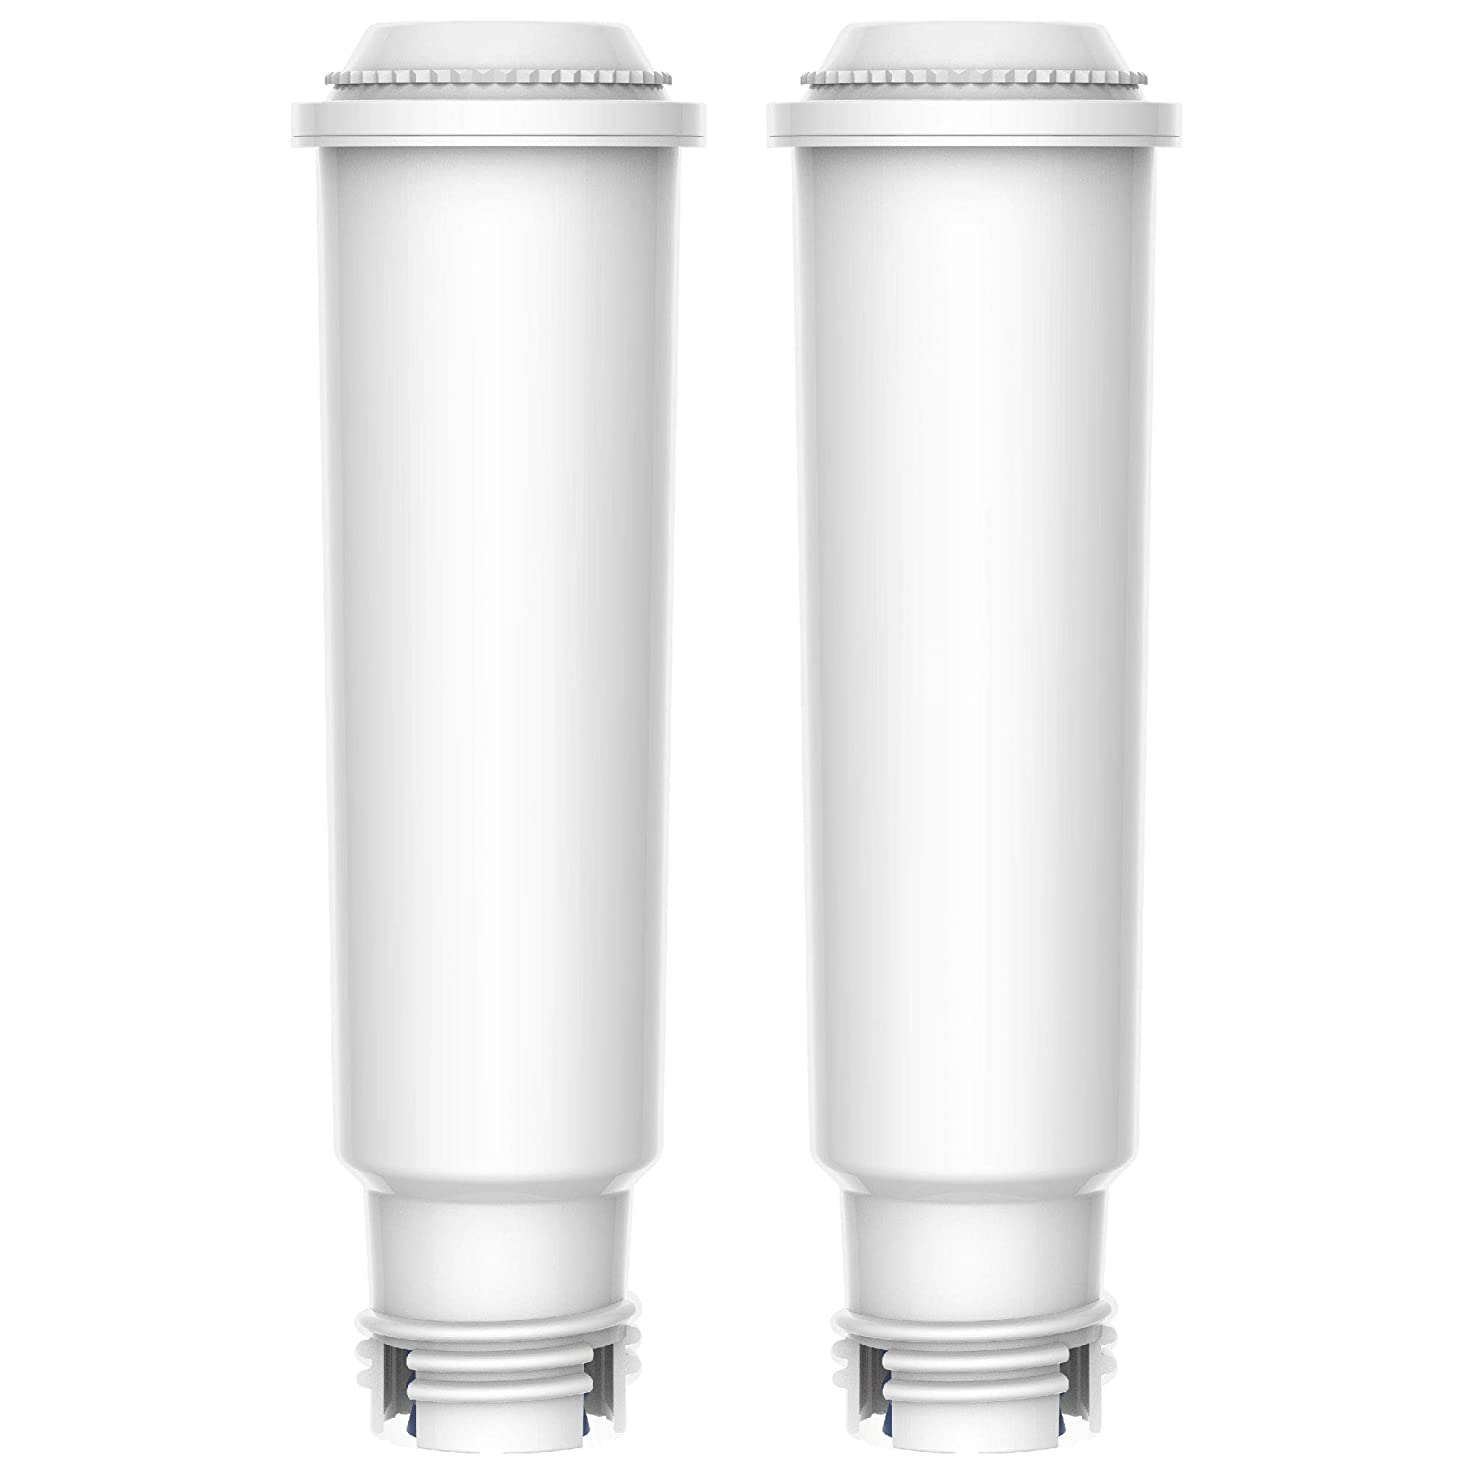 AQUA CREST TüV SüD Certified F088 Coffee-Machine Water Filter Replacement for Krups Claris F088 - Including Various Models of AEG, Bosch, Siemens, Gaggenau, Nivona, Melitta, Neff, Cocoon (Pack of 2)